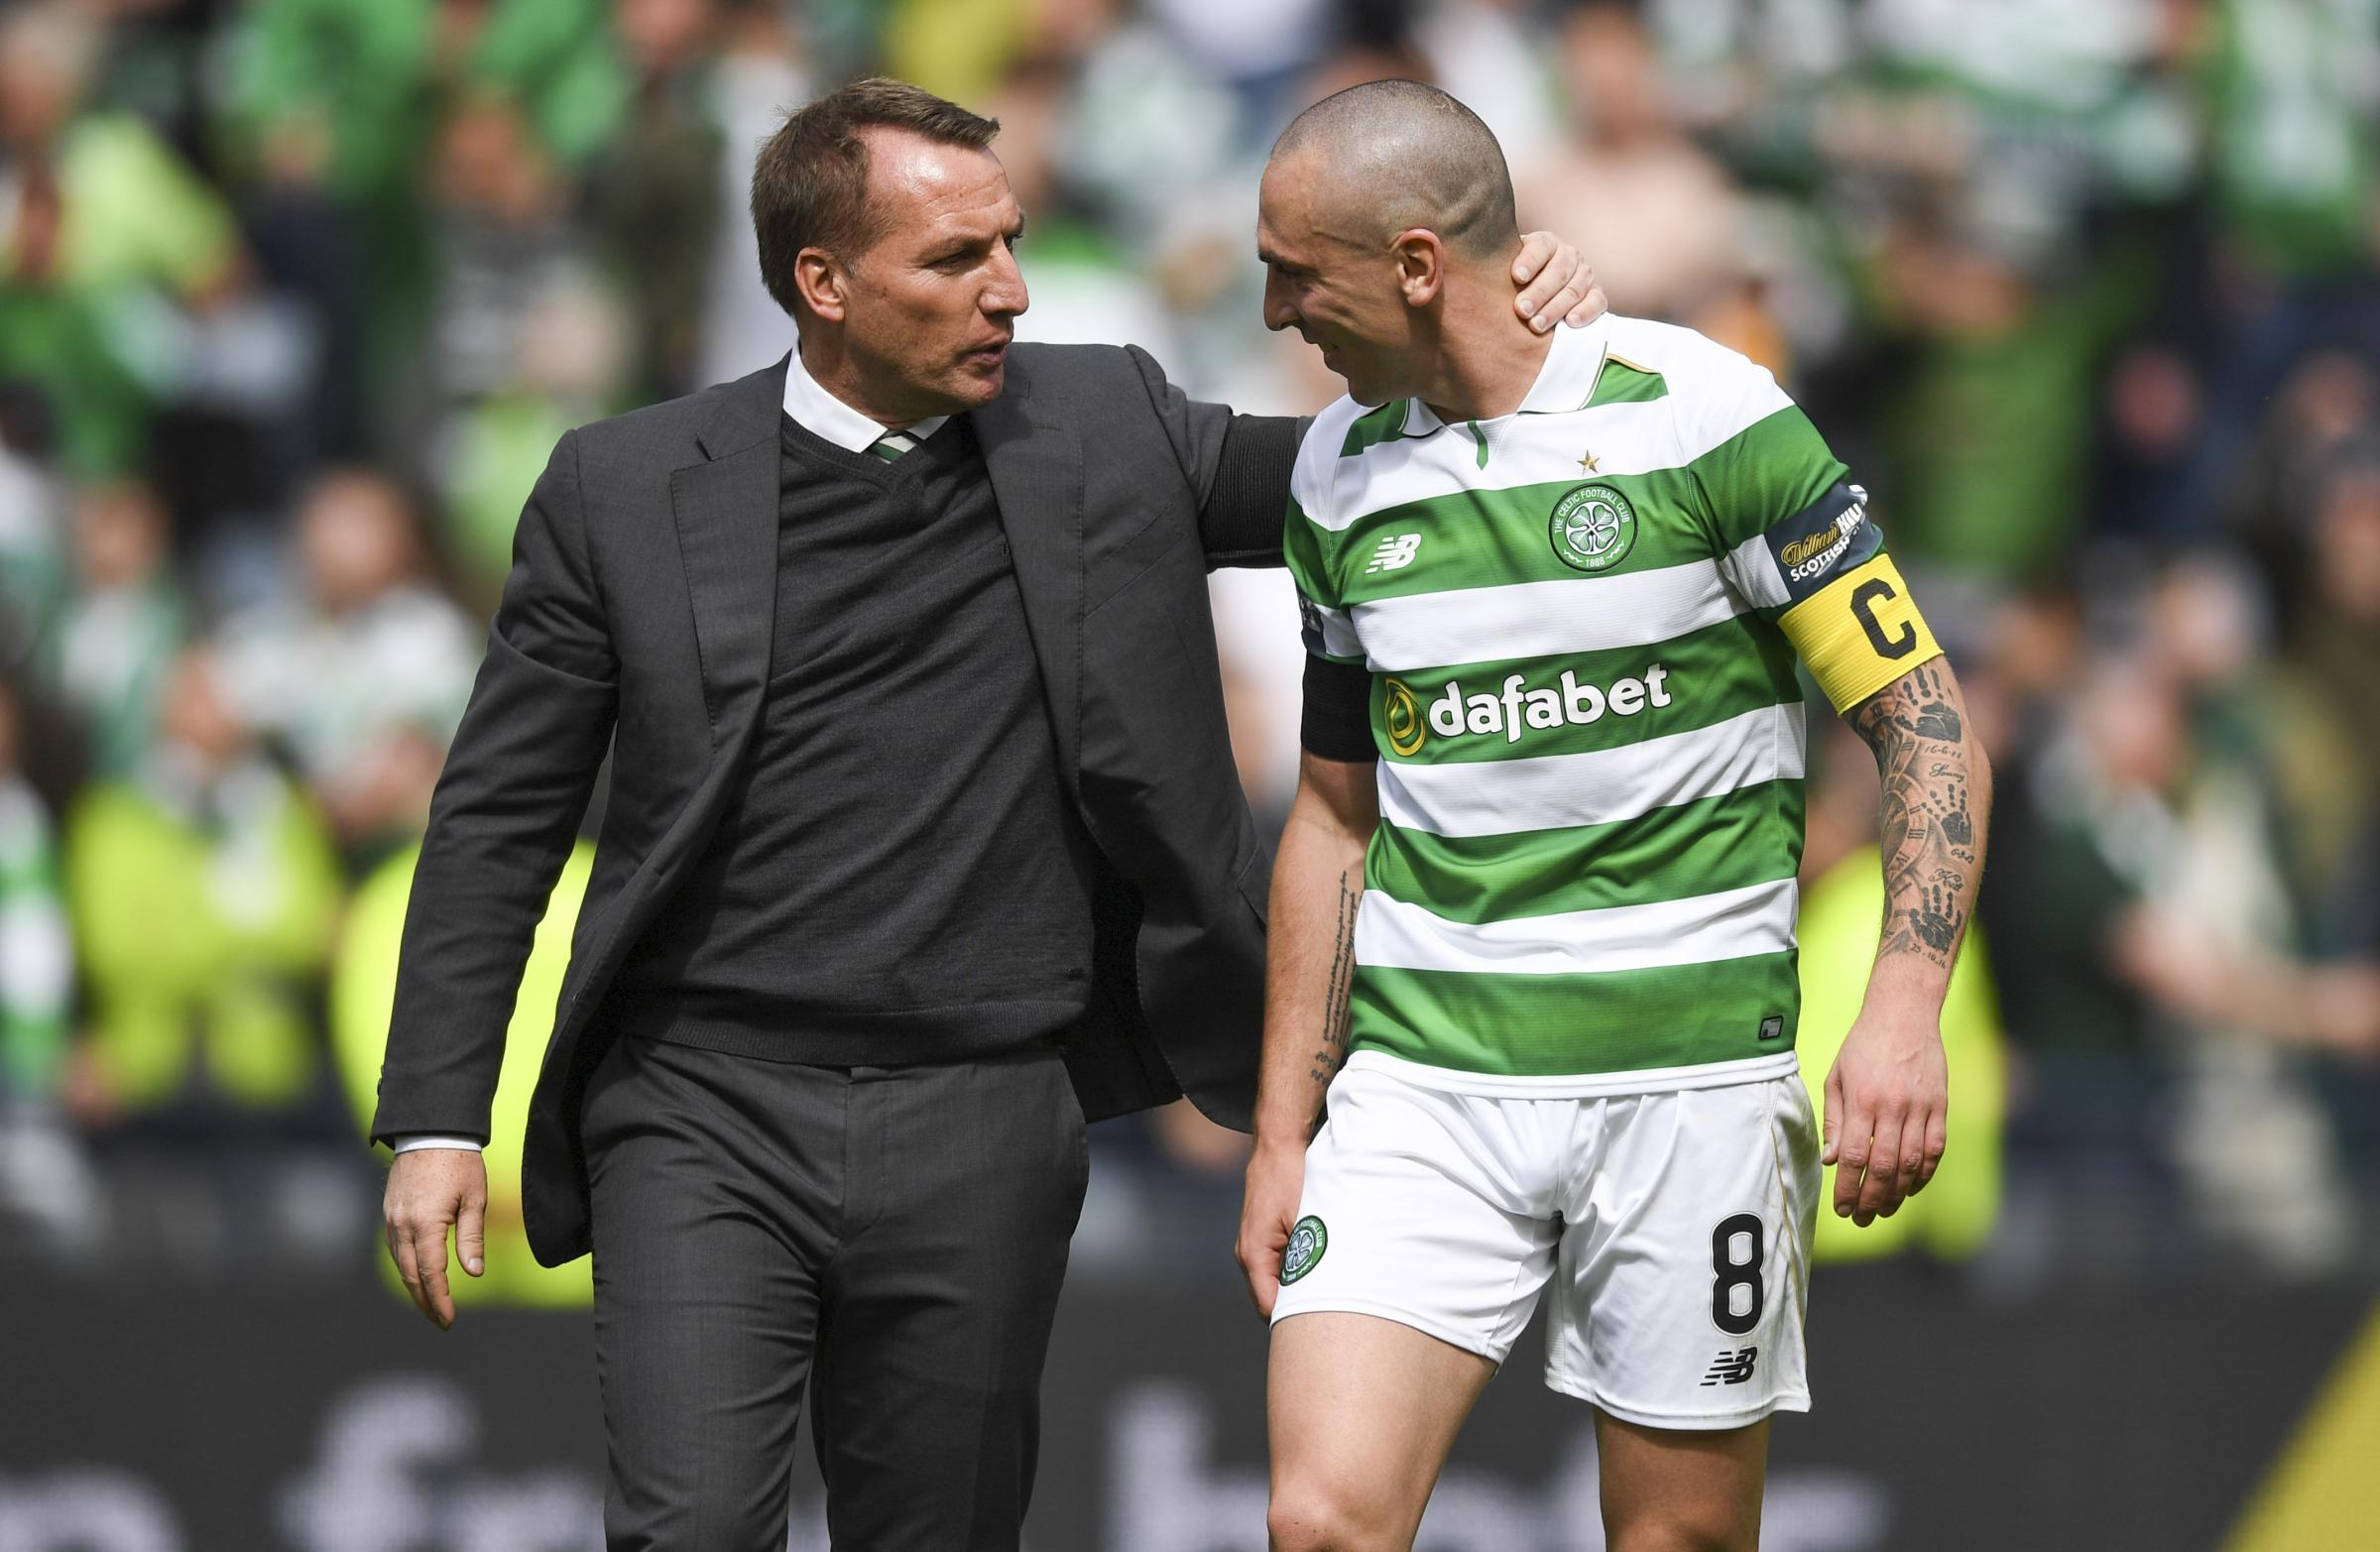 Celtic manager Brendan Rodgers says gambling is a personal responsibility and defends sponsorship deals